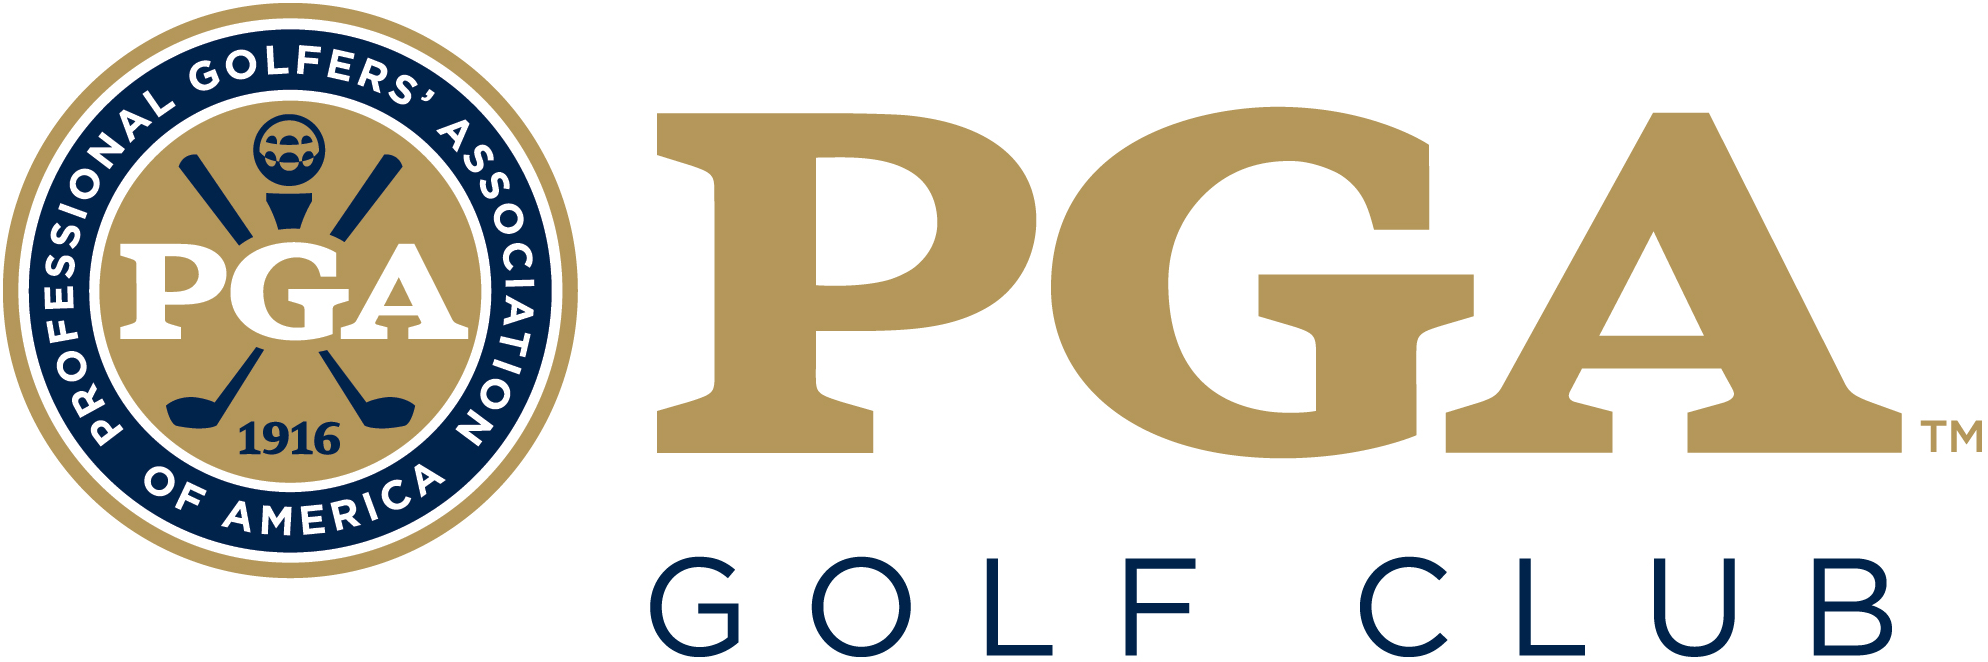 Instruction - PGA | Center for Golf Learning & Performance